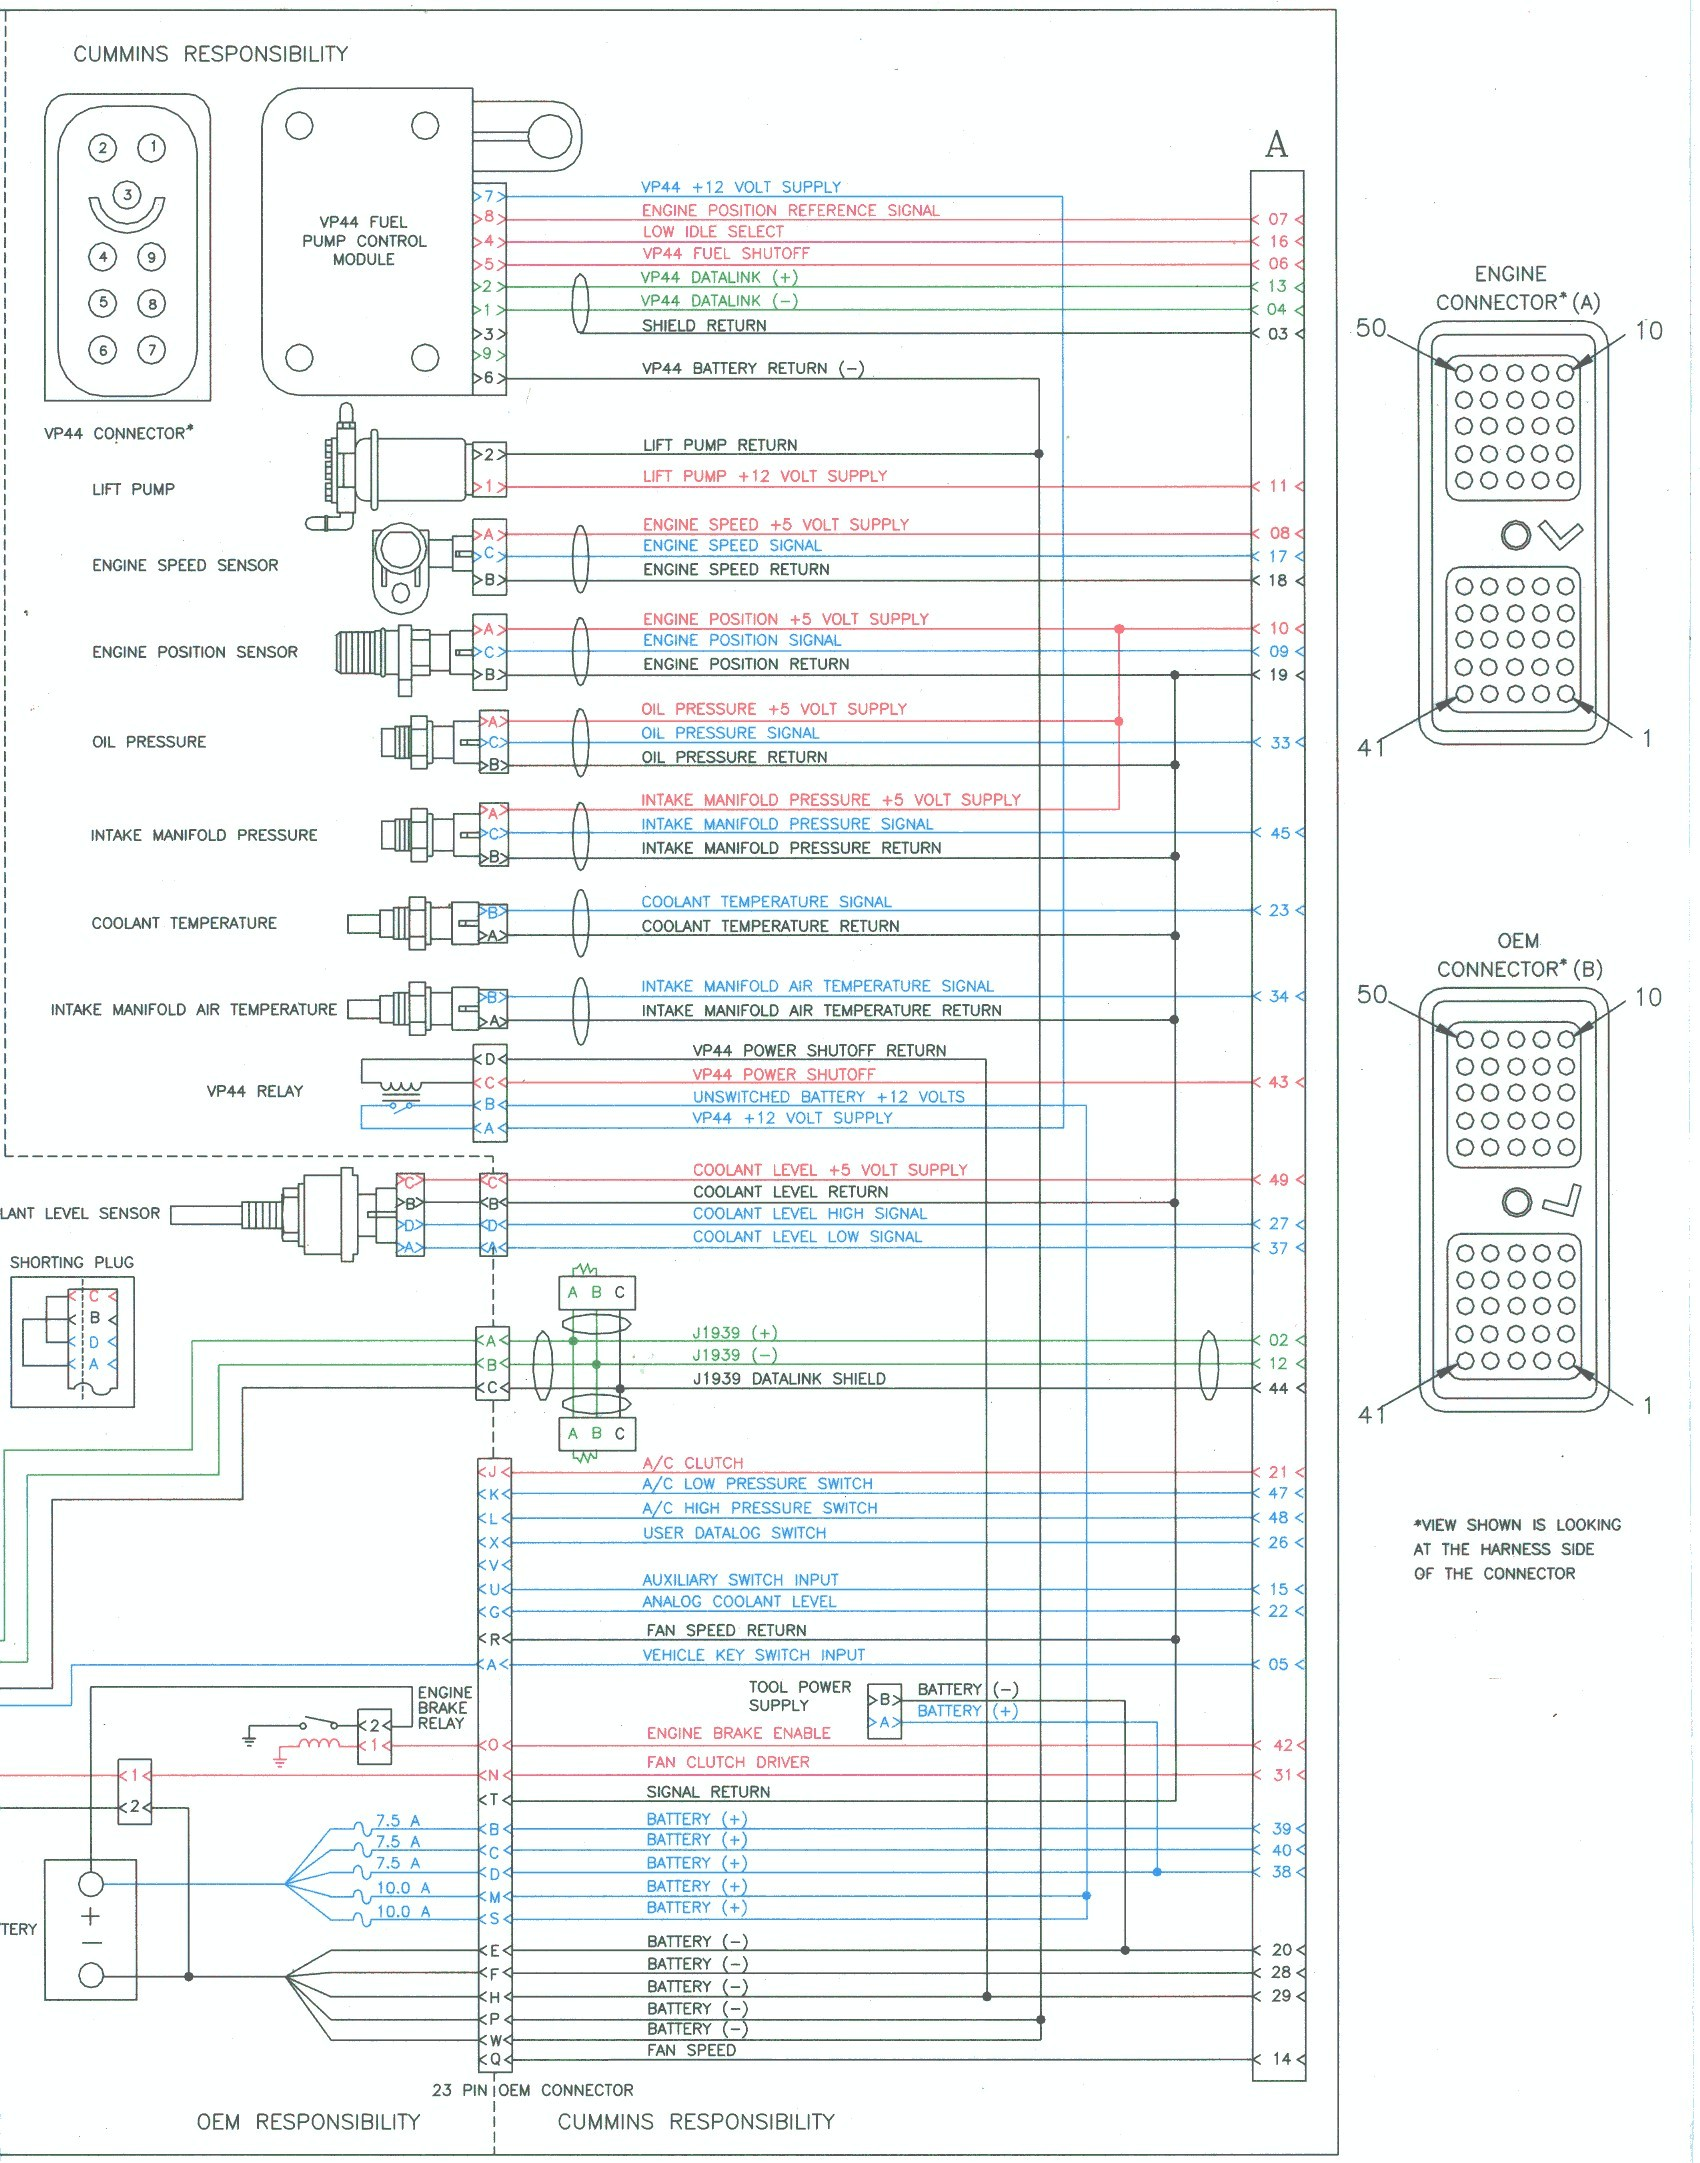 Radio Wiring Diagram For 2003 Oldsmobile Alero Best Electrical 2001 Dodge Ram Awesome Image Speaker